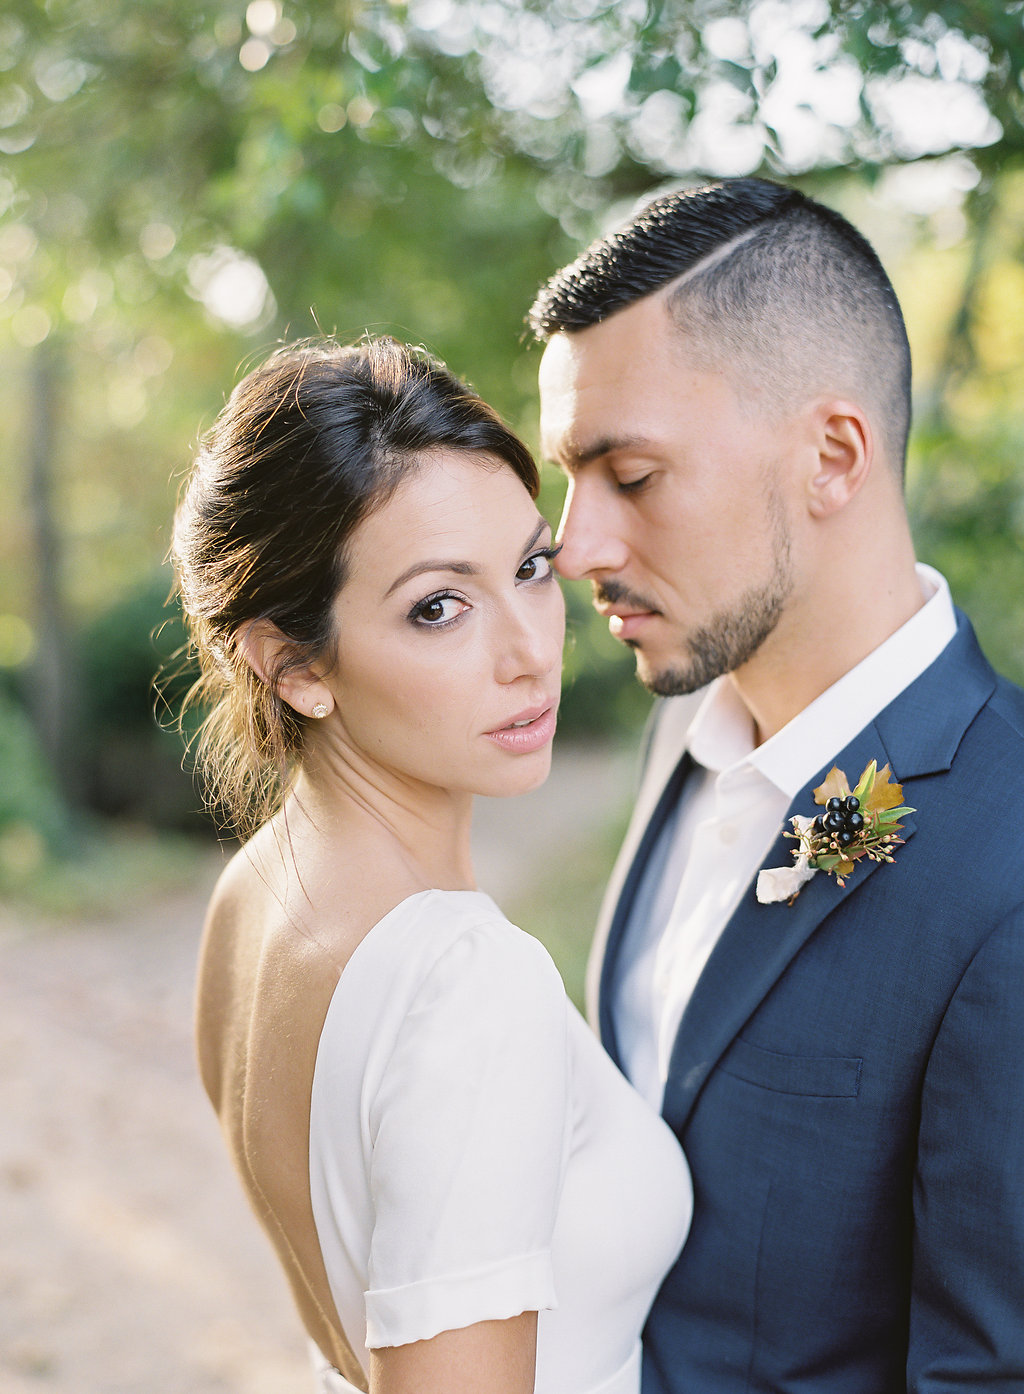 French Inspired Fall Wedding with Fine Art Destination Wedding Planner East Made Event Company and DC Film Photographer Vicki Grafton Photography at Tudor Place in Washington DC-41.jpg